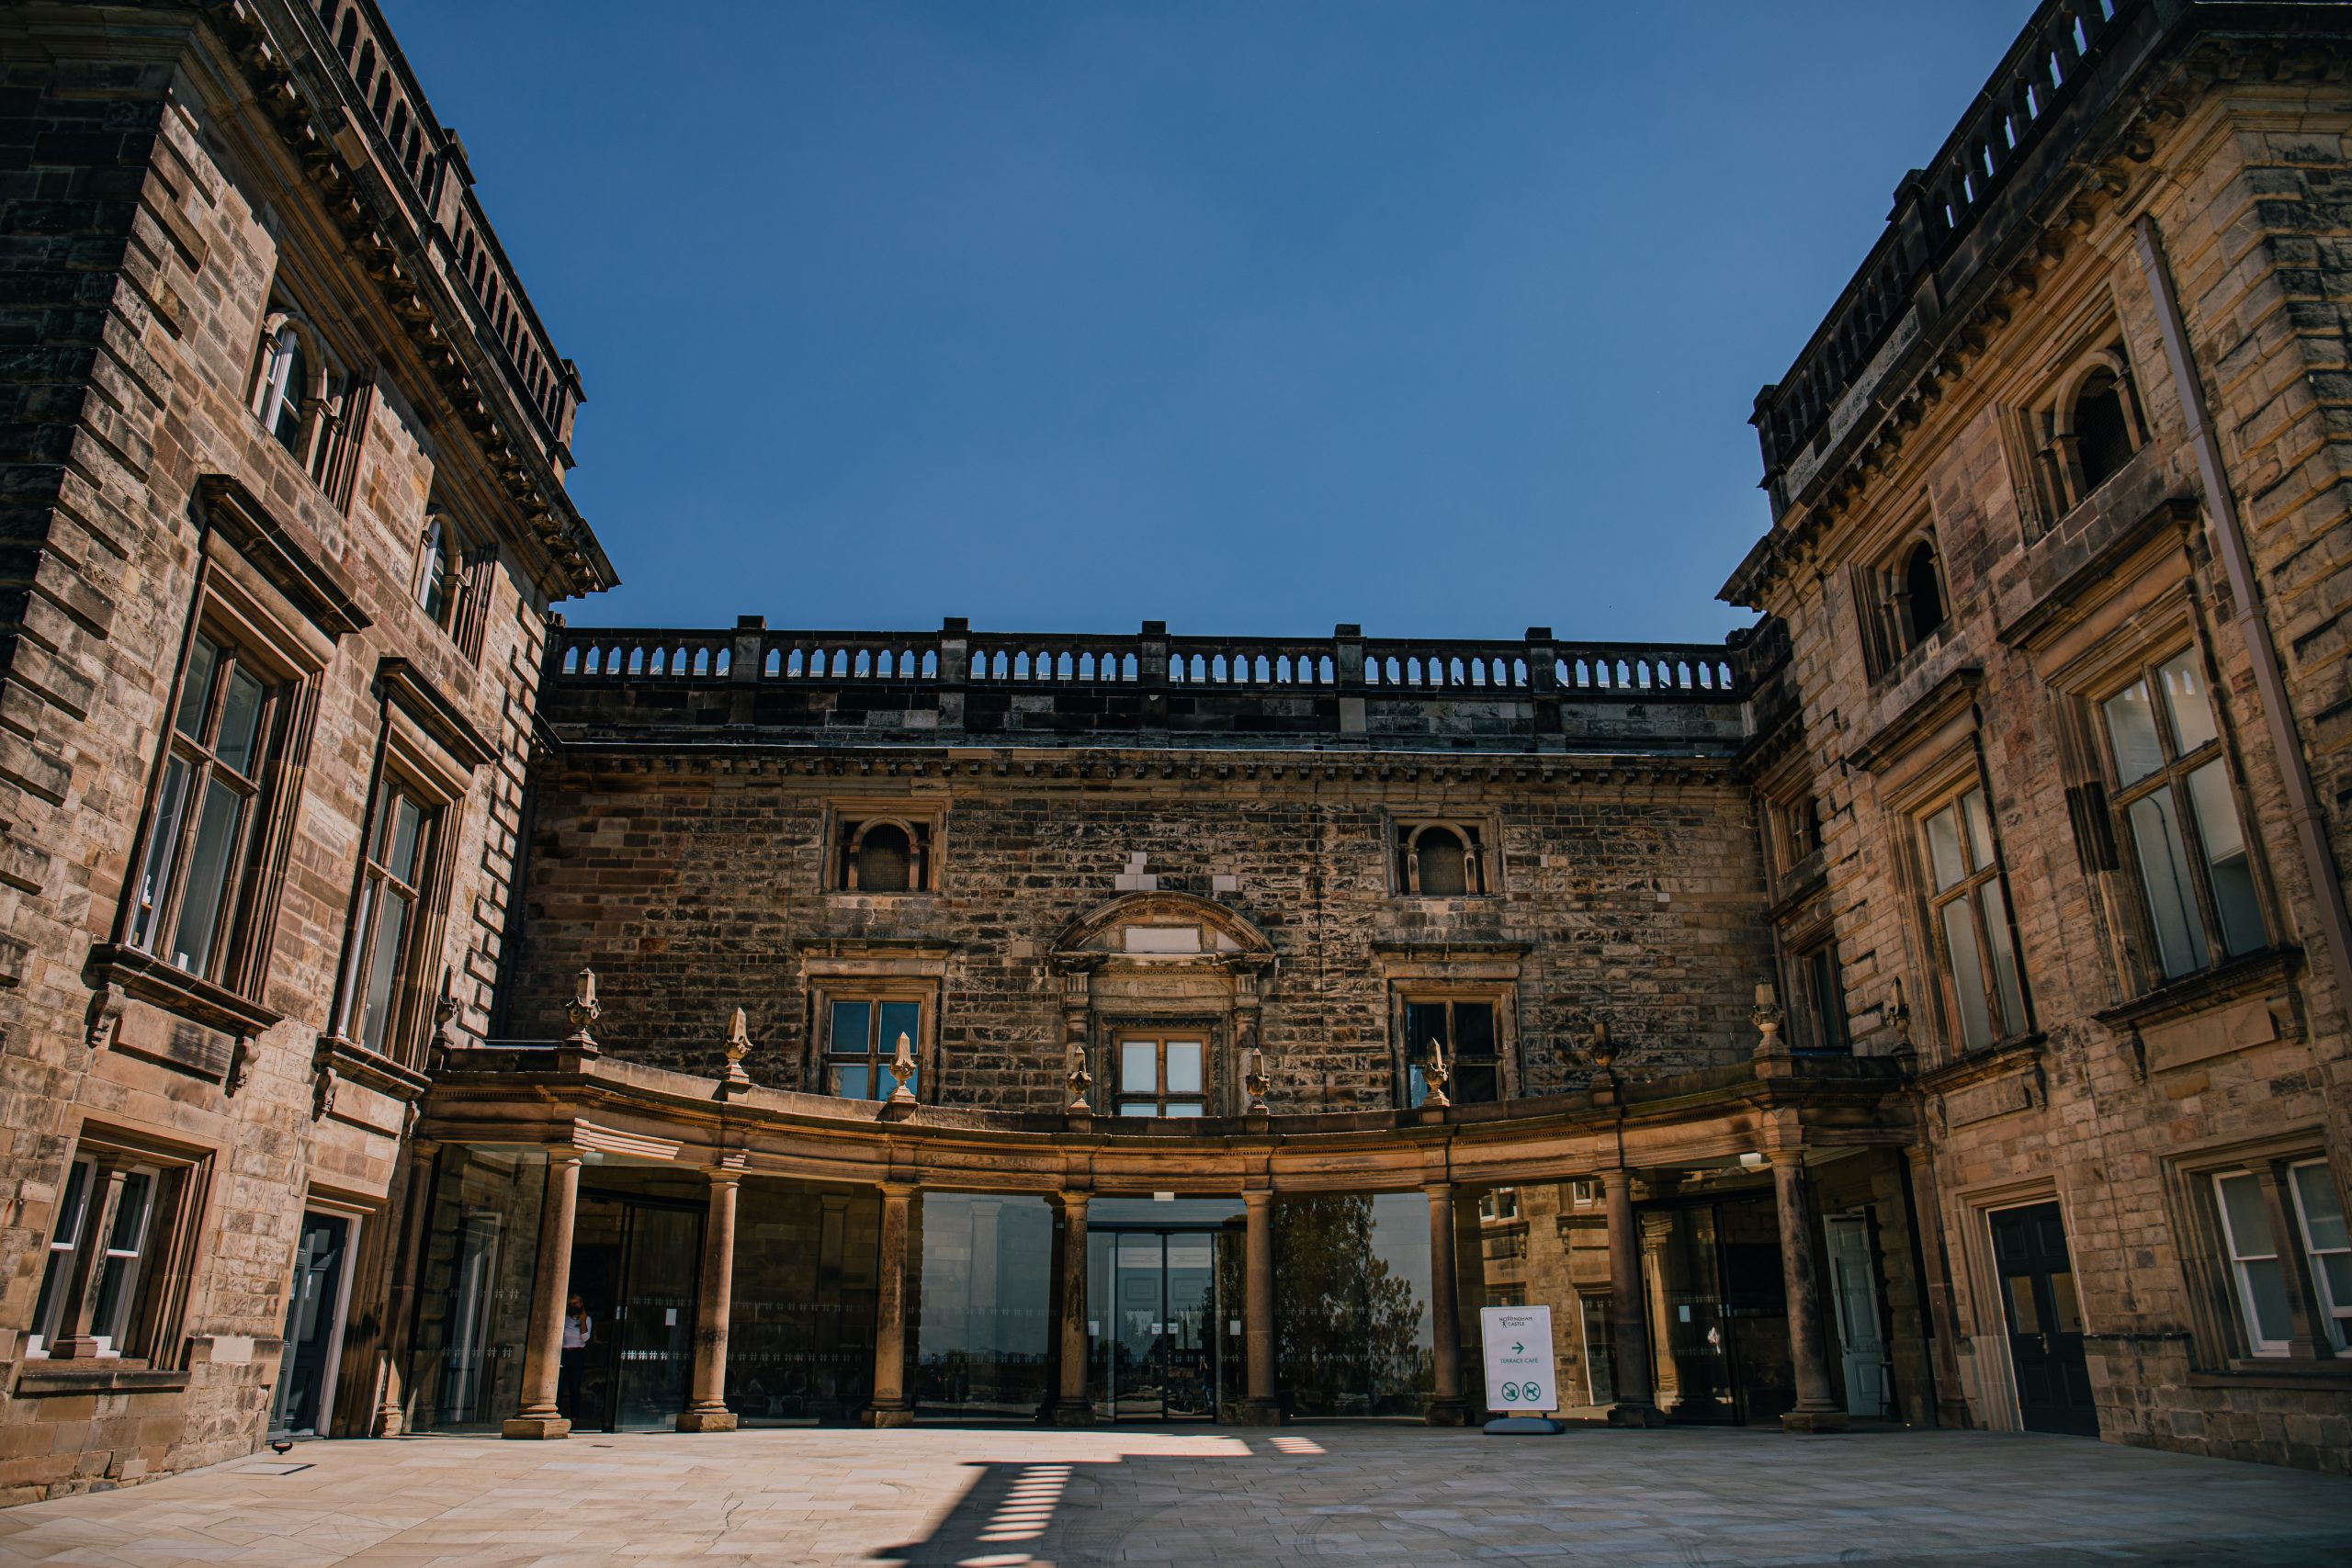 Nottingham Castle 'Refurbishment project of the year' shortlisting for G F Tomlinson at prestigious Building Awards